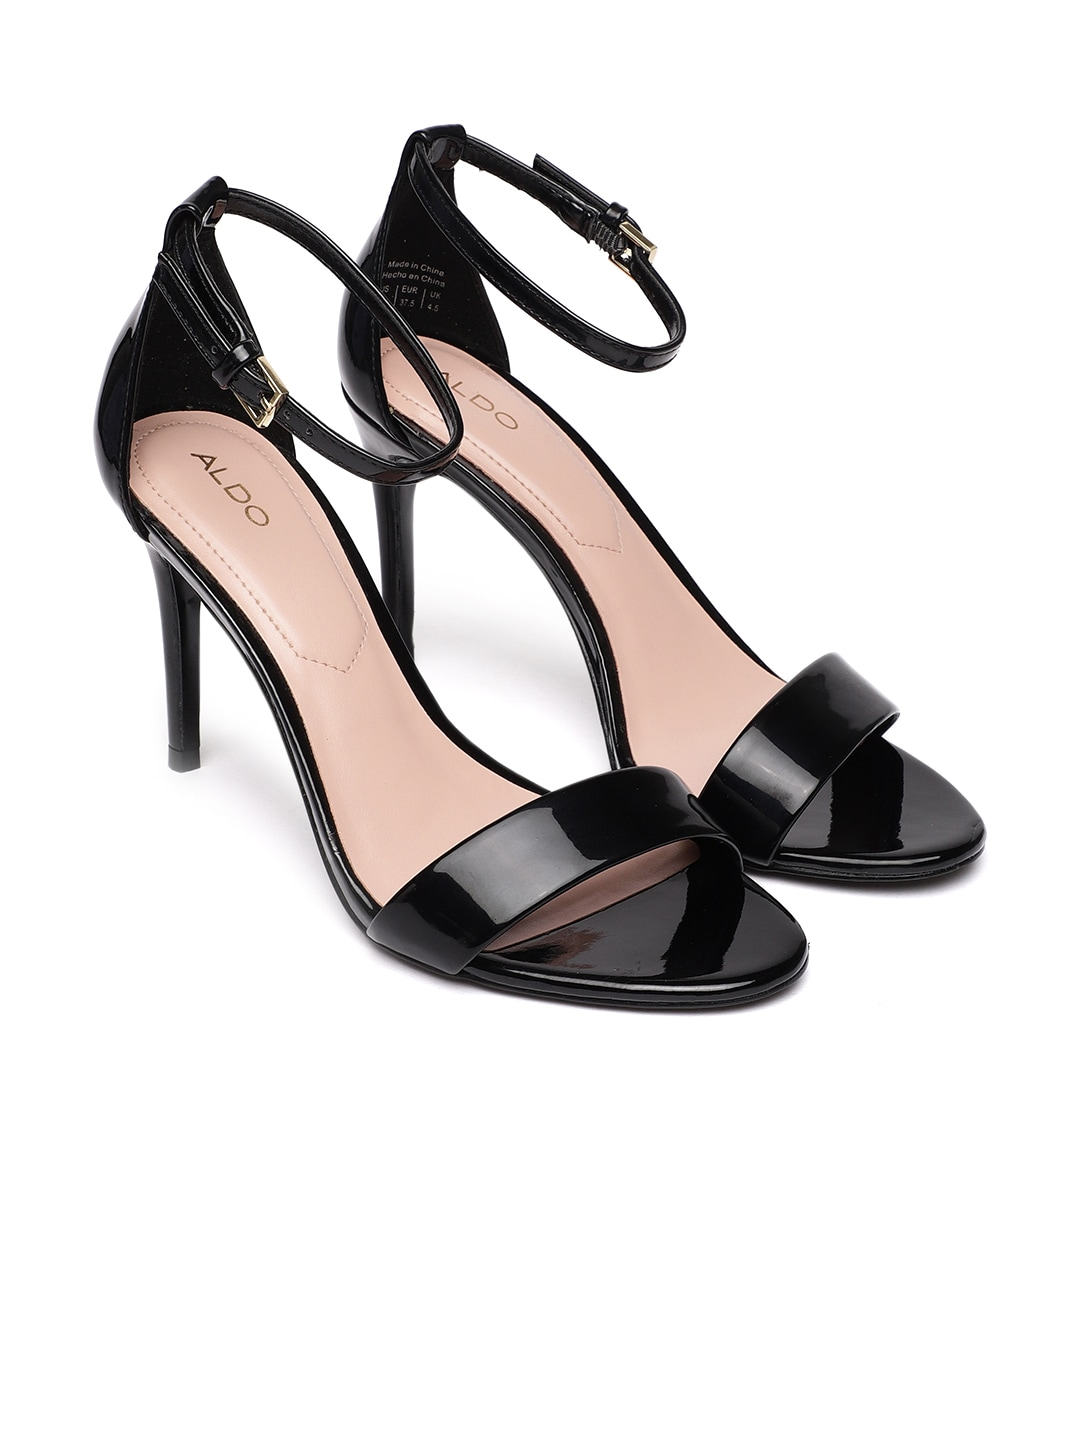 69f5a17f61a Aldo Shoes Casual Sandals - Buy Aldo Shoes Casual Sandals online in India